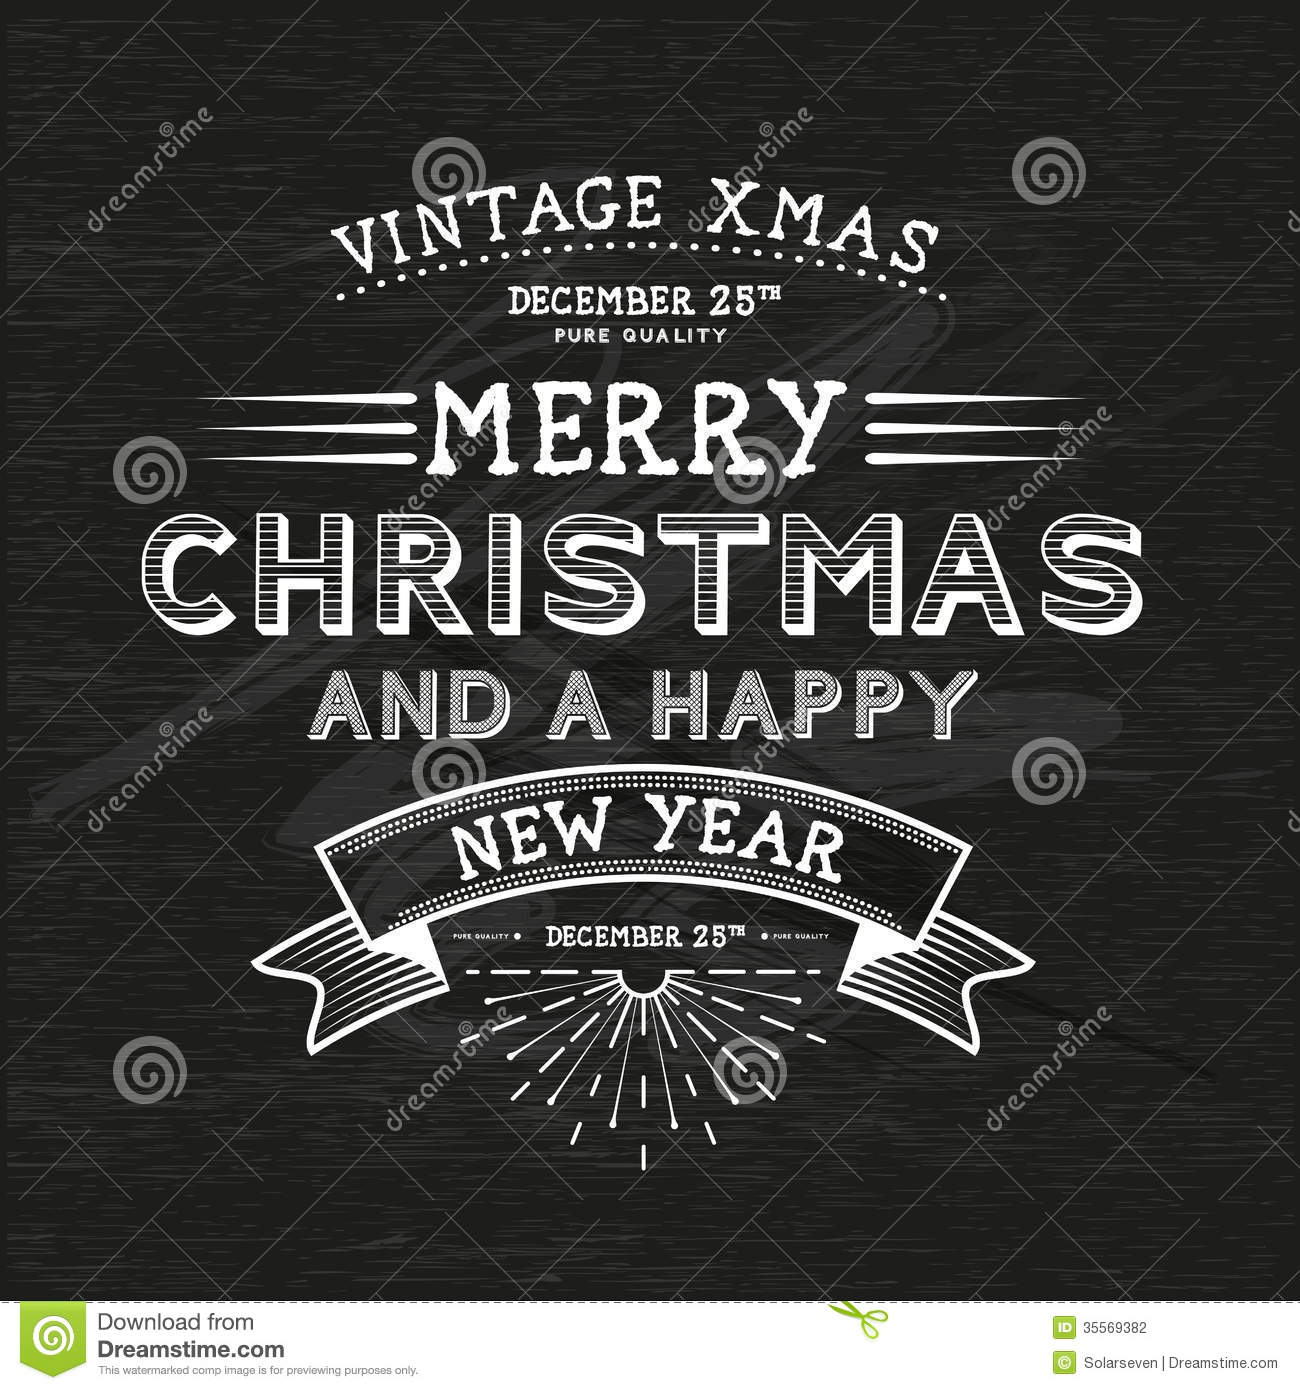 Vintage Christmas Message stock vector. Illustration of text - 35569382